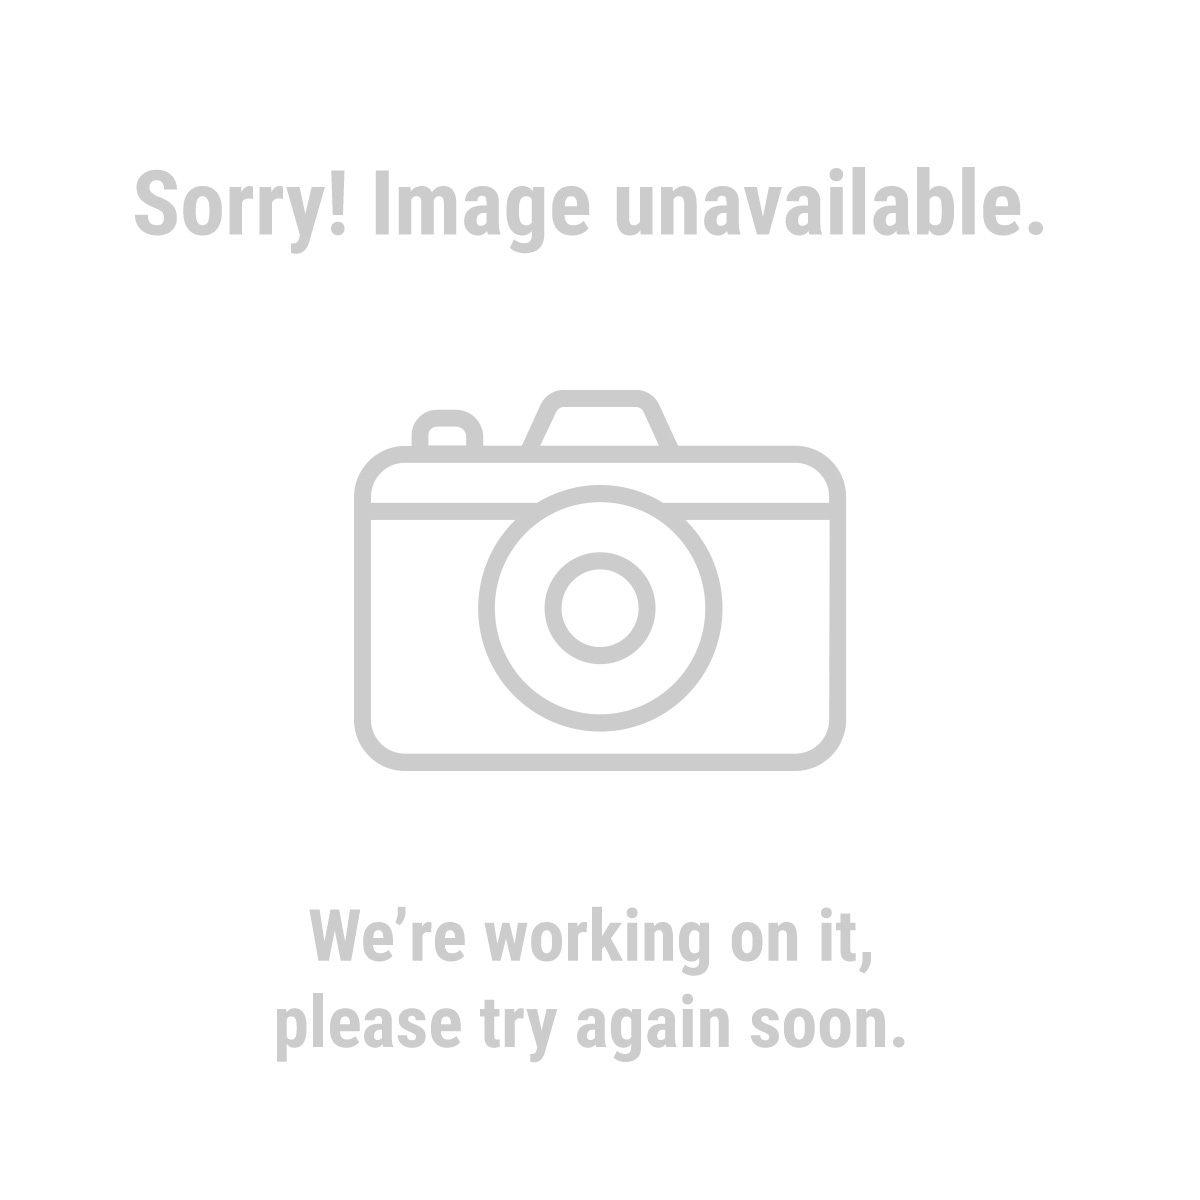 HFT 61392 12 in.  x 2 in. Red and White Reflective Strips, 10 Piece